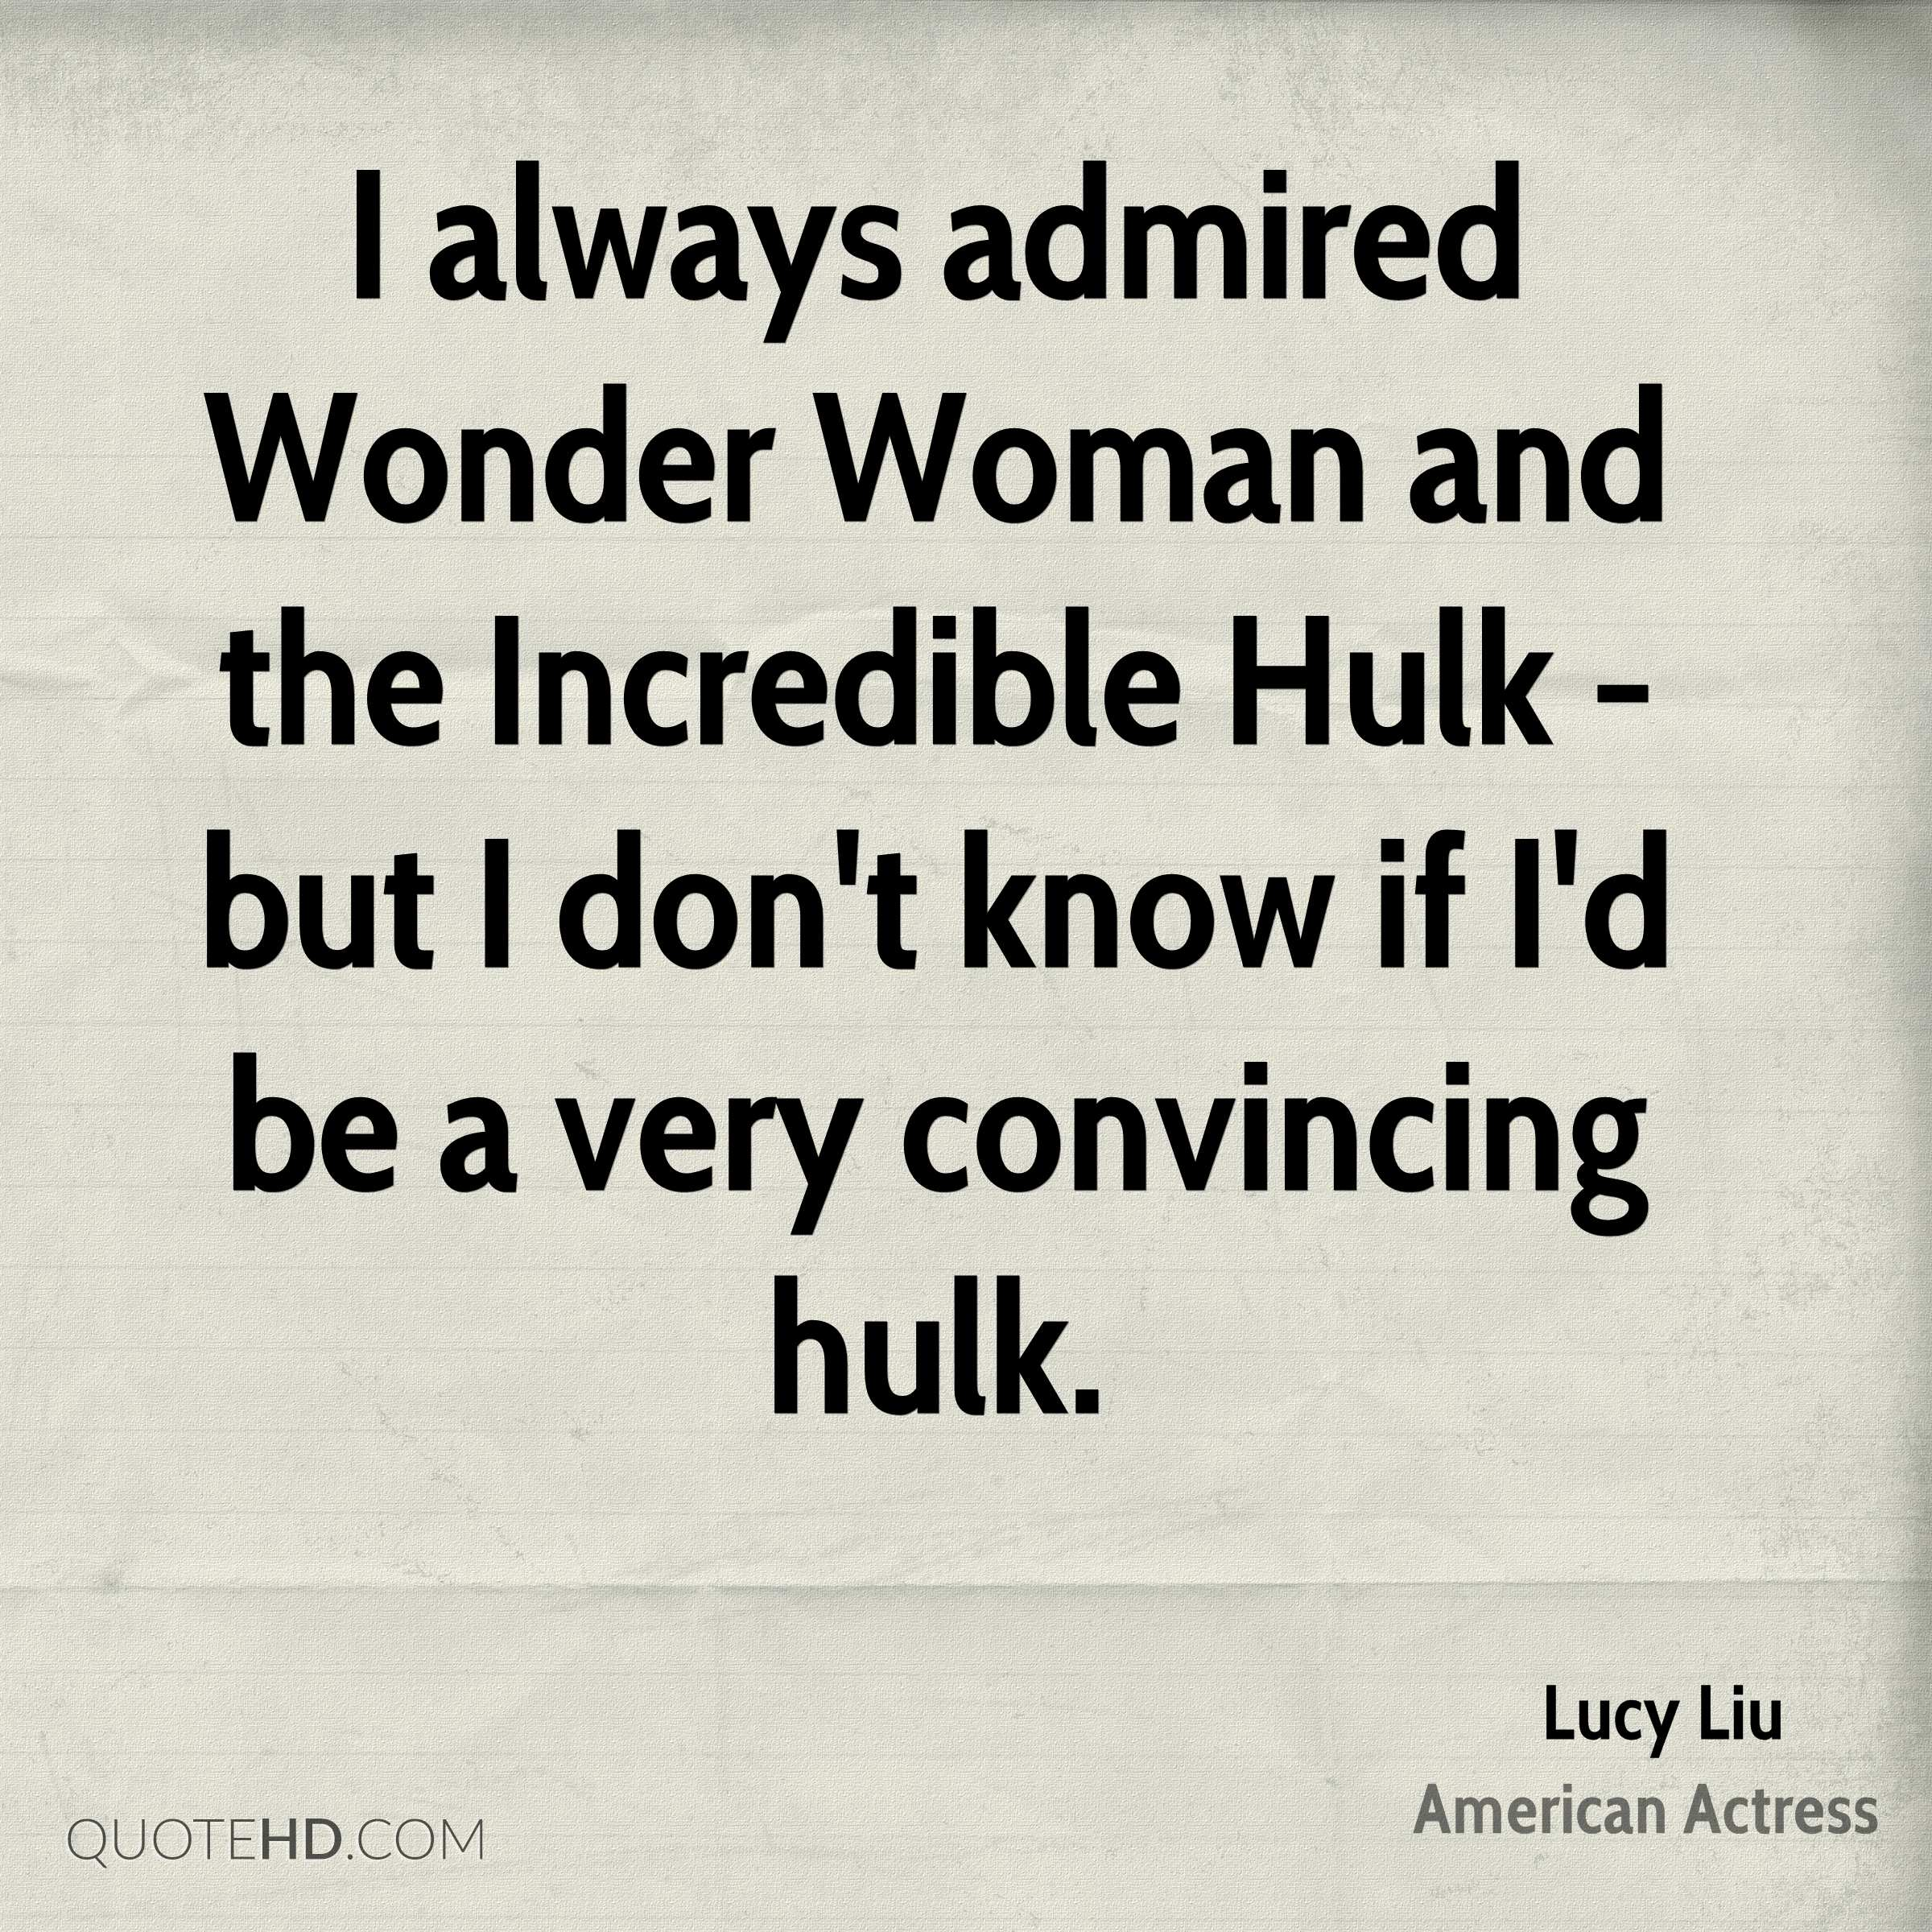 I always admired Wonder Woman and the Incredible Hulk - but I don't know if I'd be a very convincing hulk.